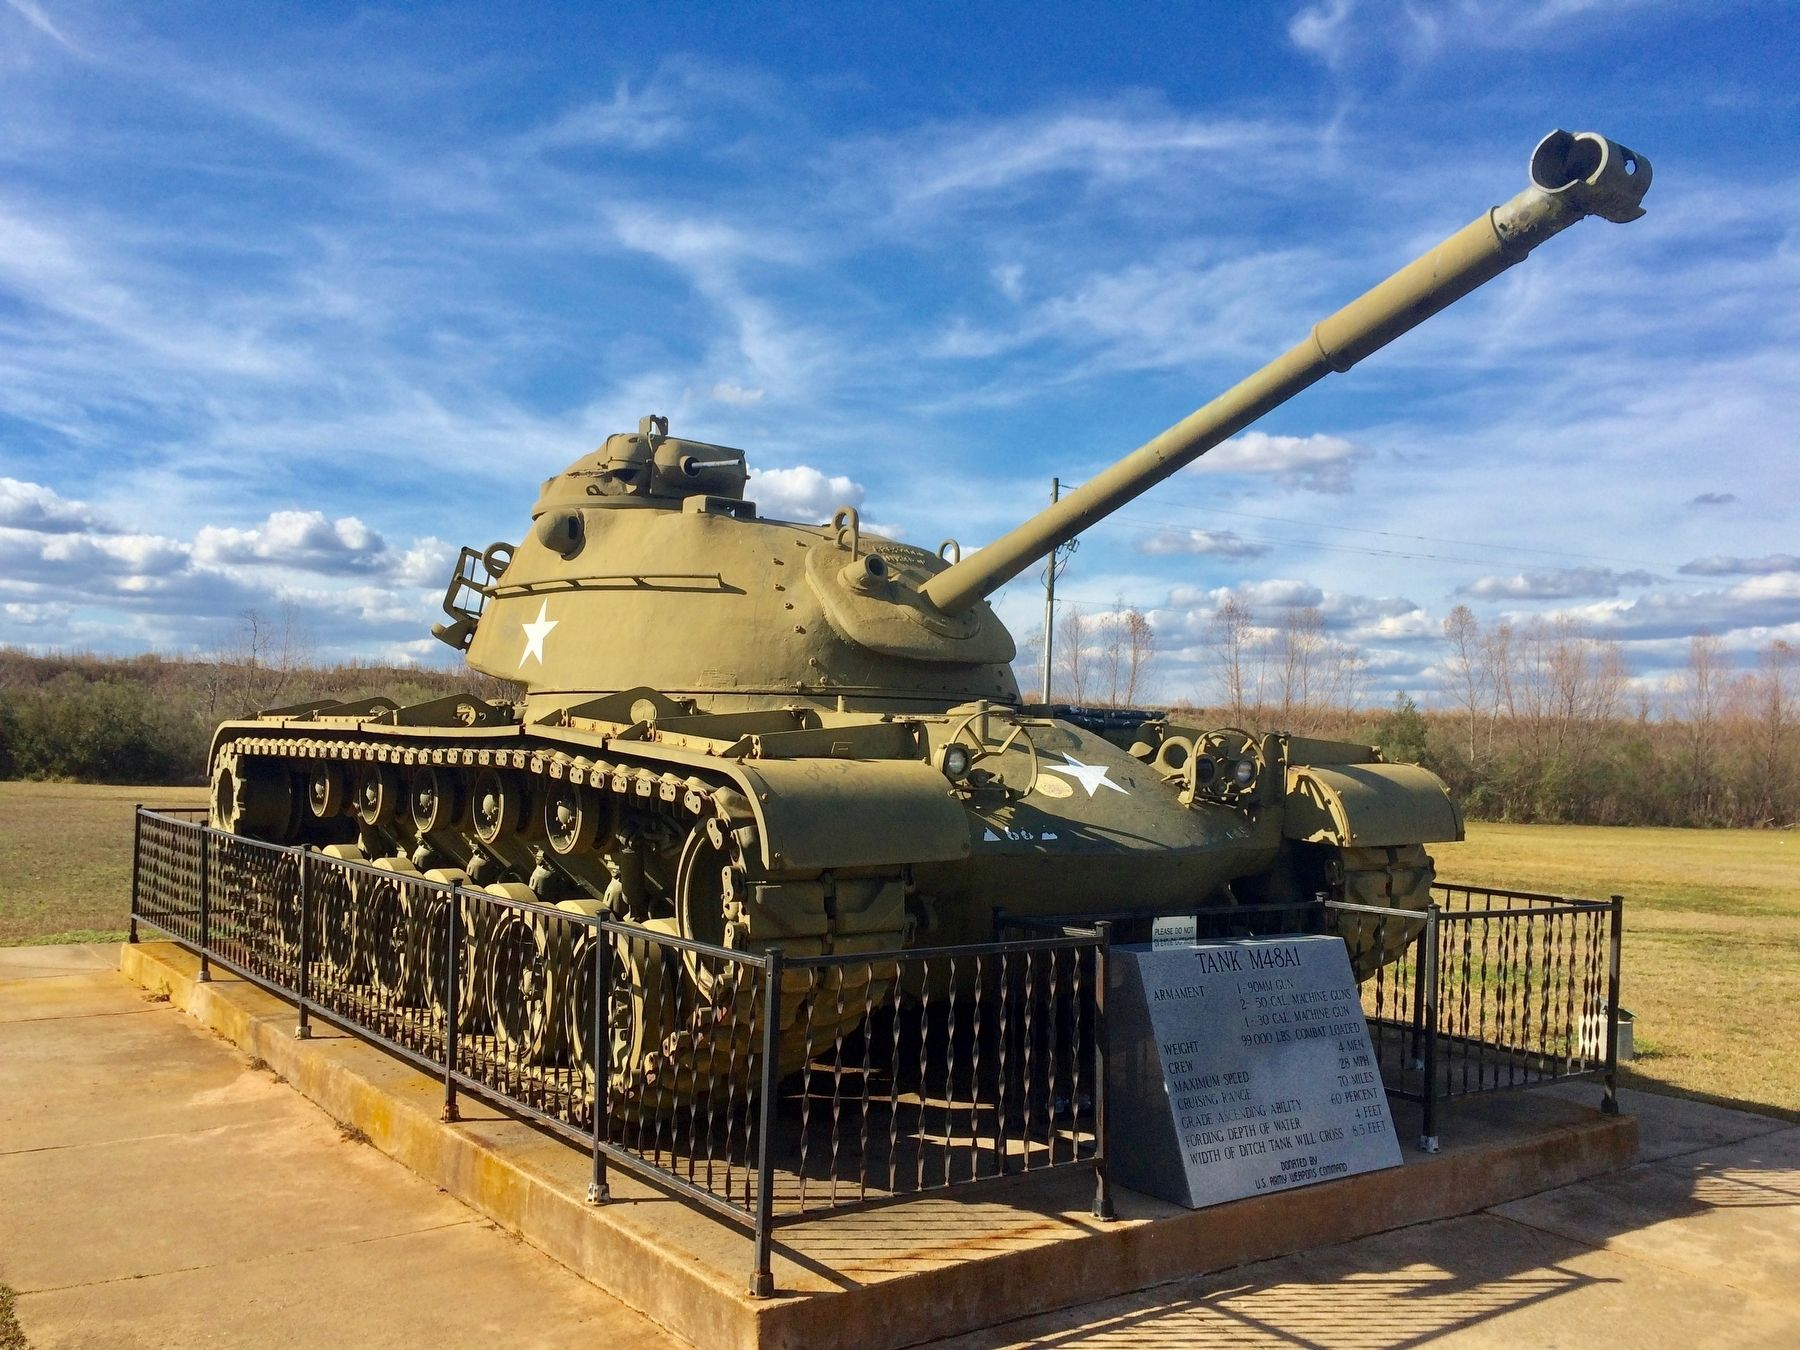 Tank M48A1 Patton Main Battle Tank (MBT) image. Click for full size.